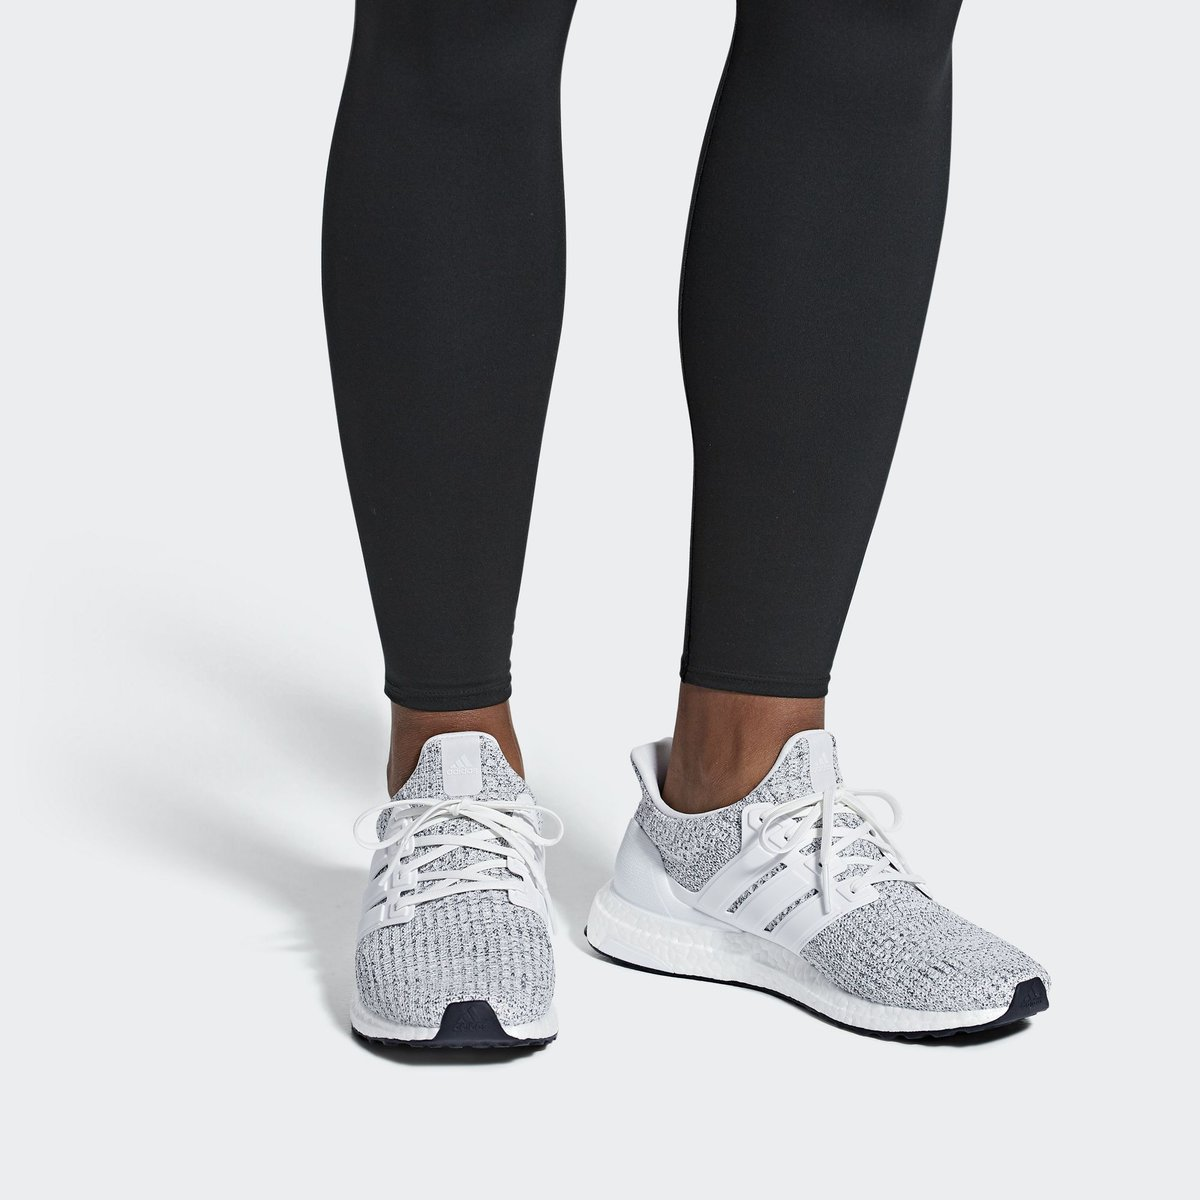 STILL ACTIVE! Under retail on #adidas US. adidas Ultra Boost 4.0. Retail $180. Now $126 shipped. Use code ADIFAM in cart. —&gt;  http:// bit.ly/2EkeiIB  &nbsp;  <br>http://pic.twitter.com/q49XPbZZkl